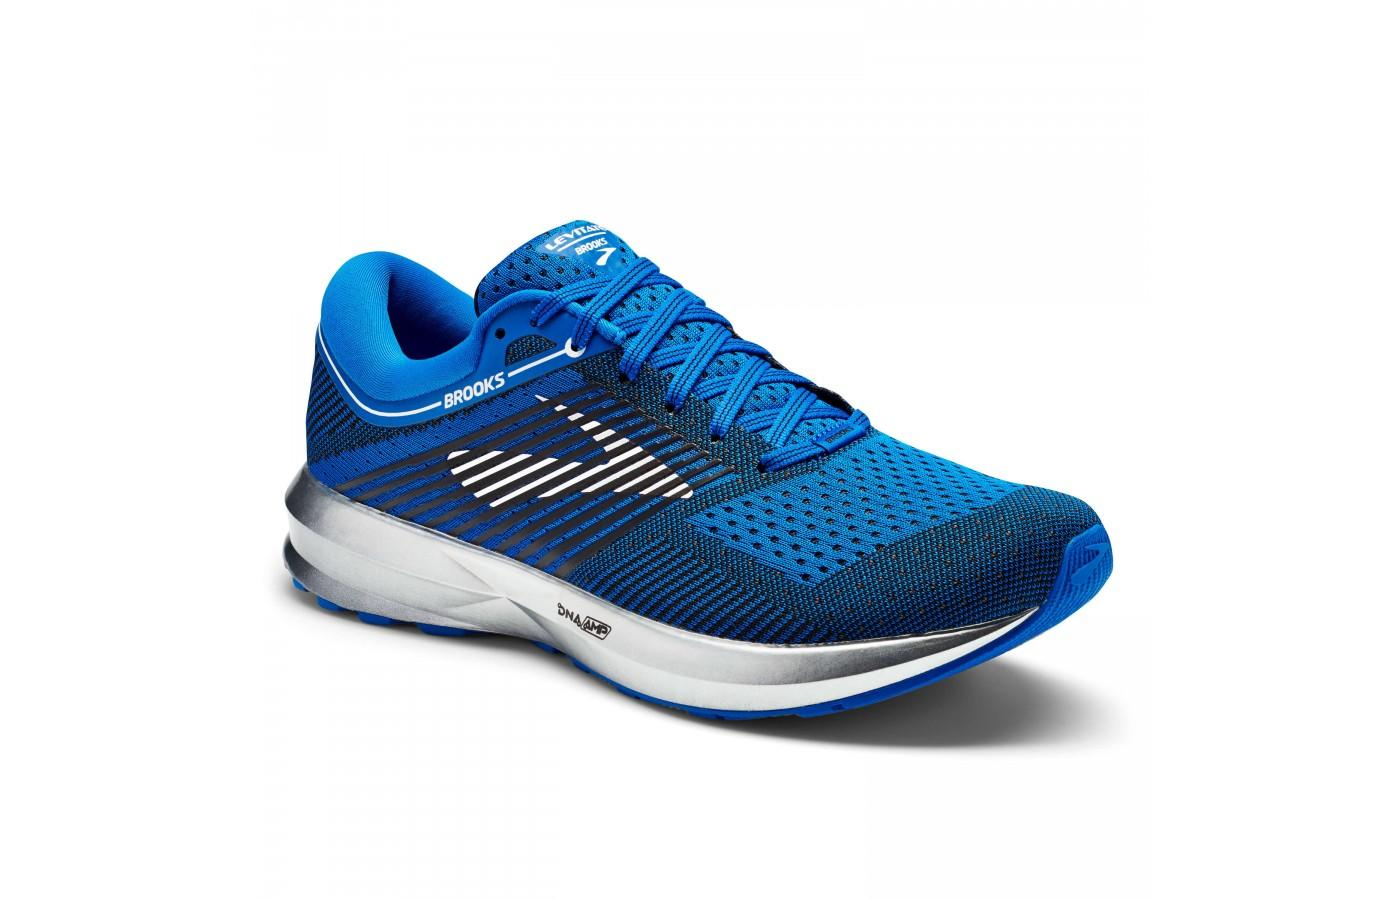 Brooks Levitate Reviewed - To Buy or Not in Apr 2019  6b89339a7